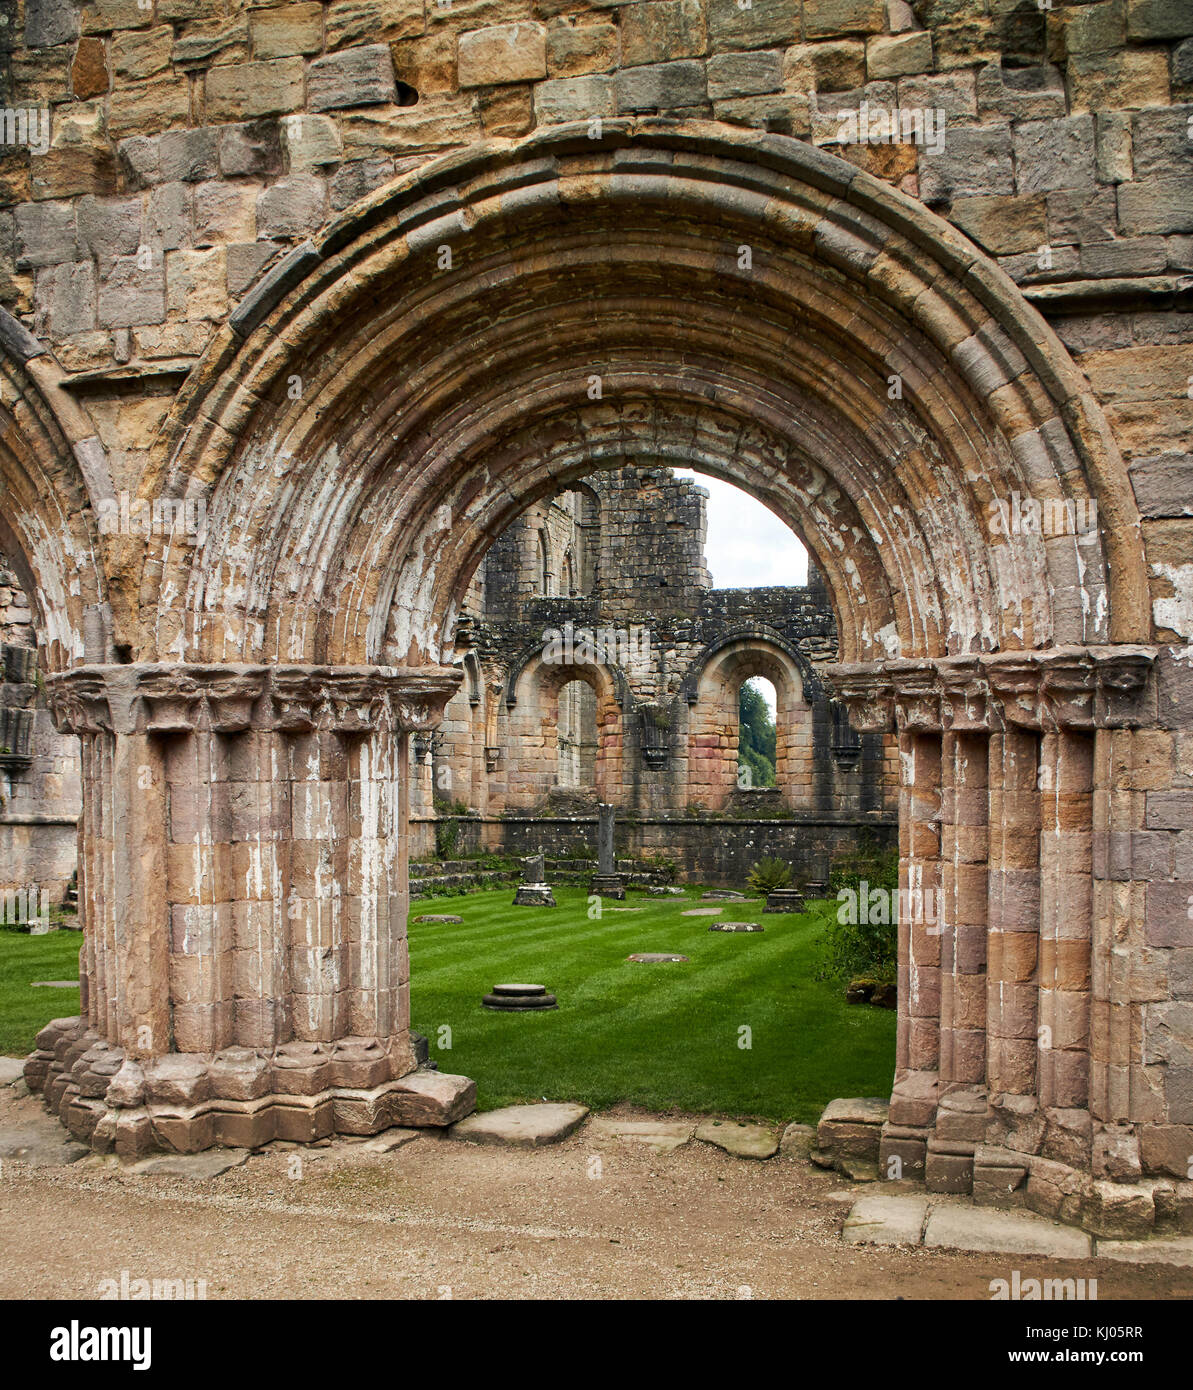 England, NorthYorkshire;Romanesque arch ; North Yorkshire the ruins of the 12th century Cistercian Abbey known as - Stock Image